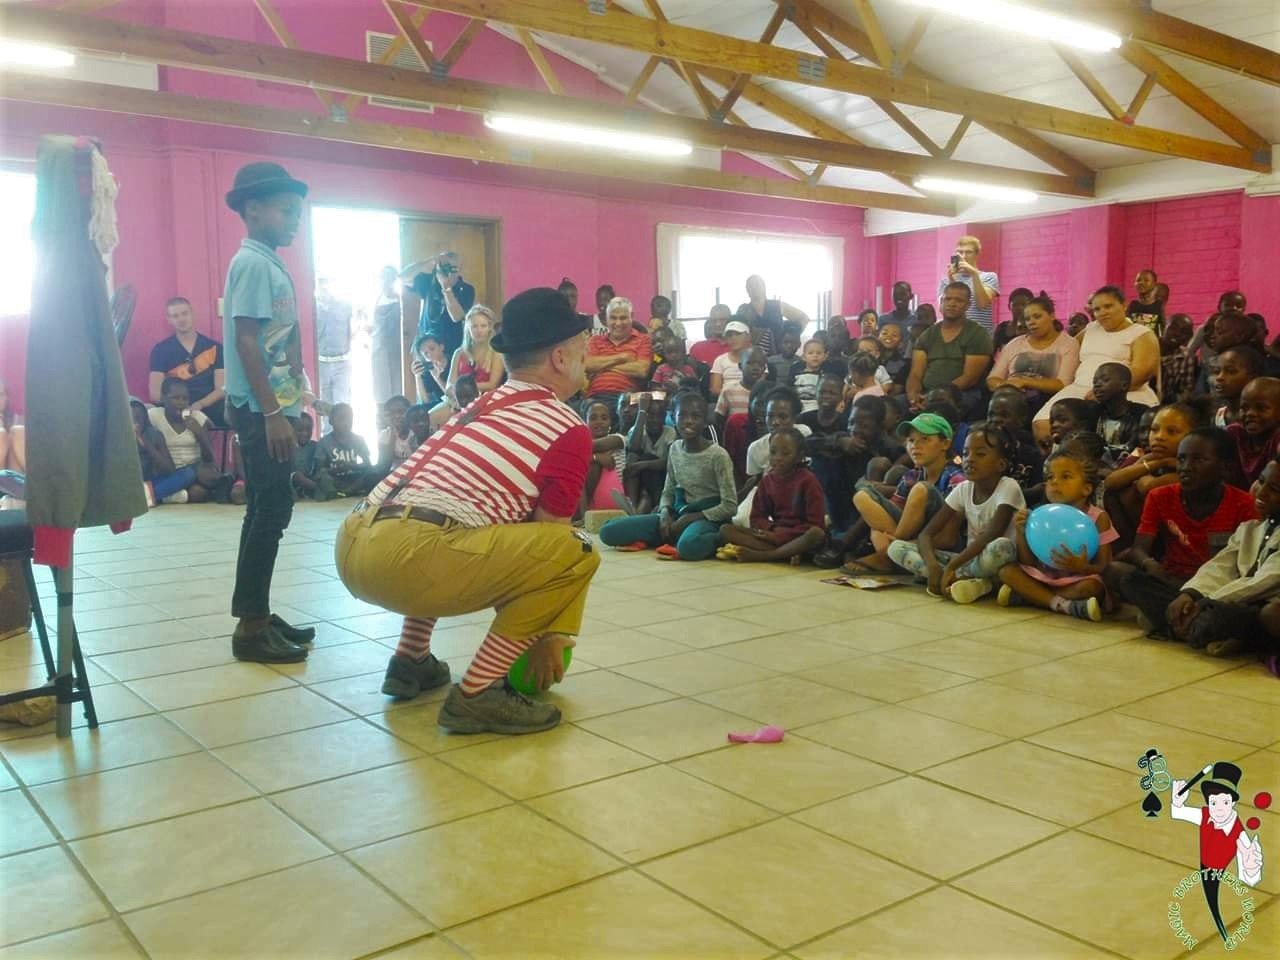 Children of Home of Good Hope entertained with cheerful show